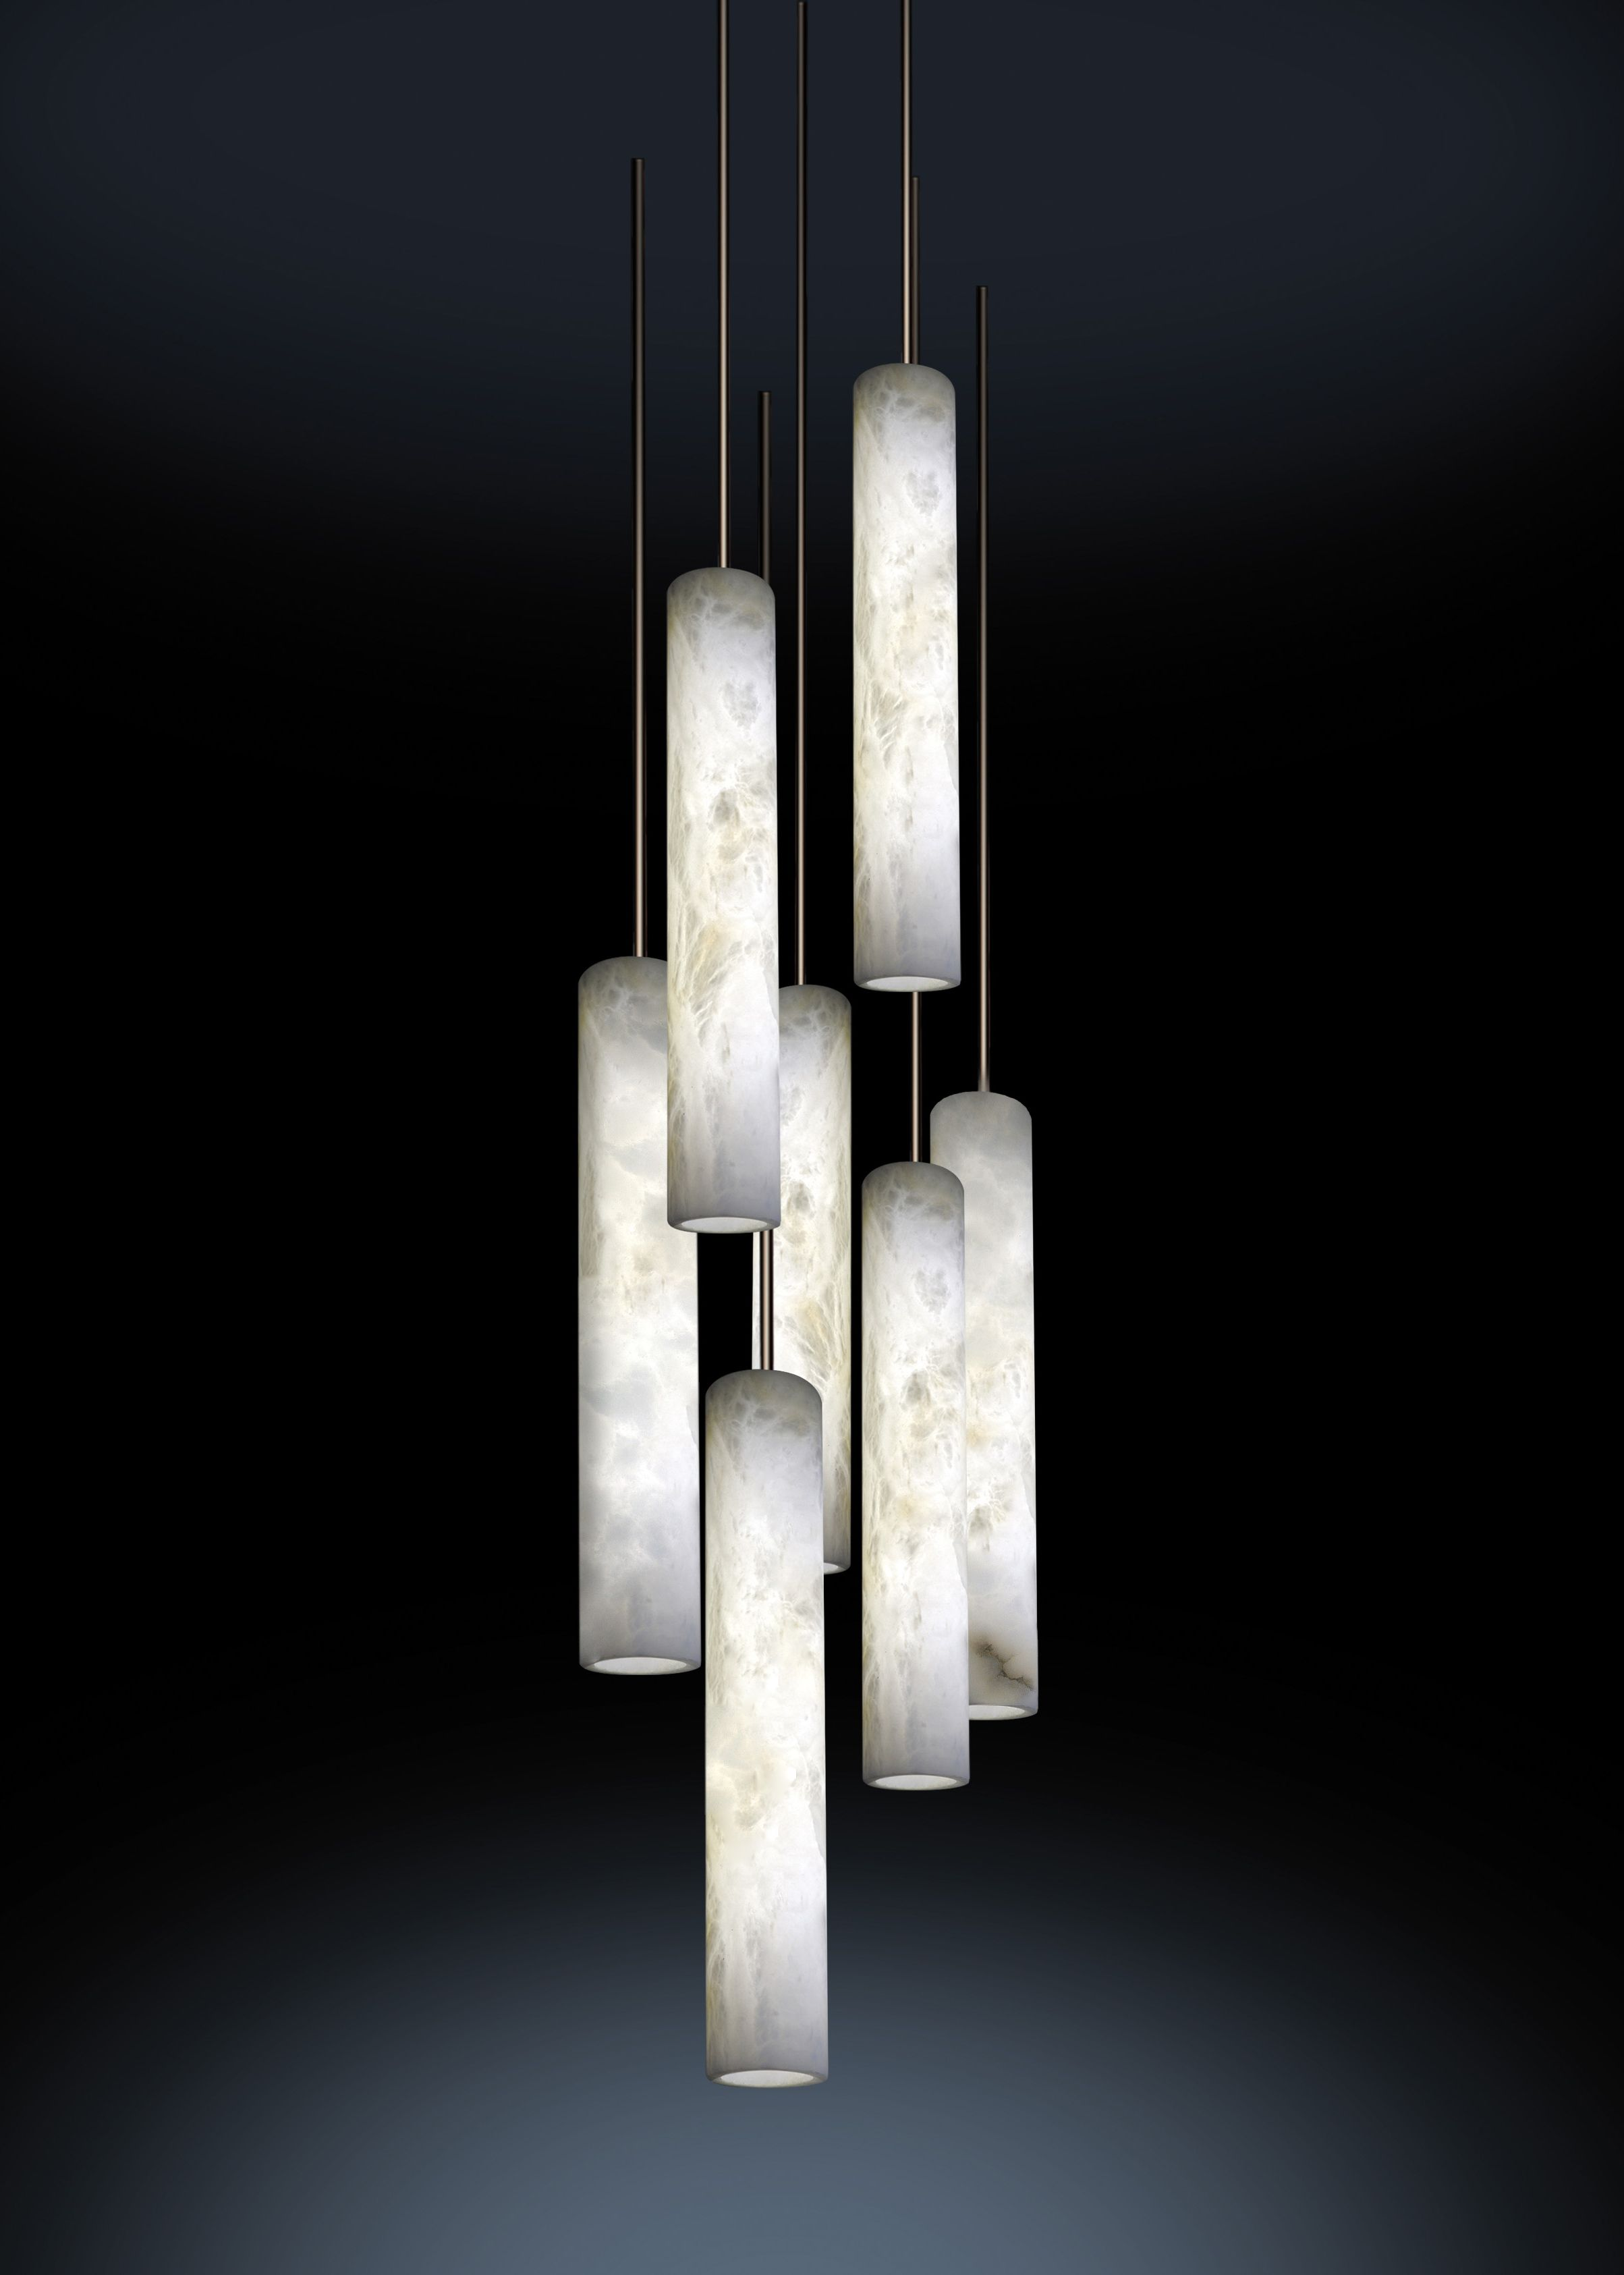 Vertical pendant light sumatra columns chandeliers and lights discover sumatra our chandelier made from simple elegant alabaster columns the delicate backlights arubaitofo Images